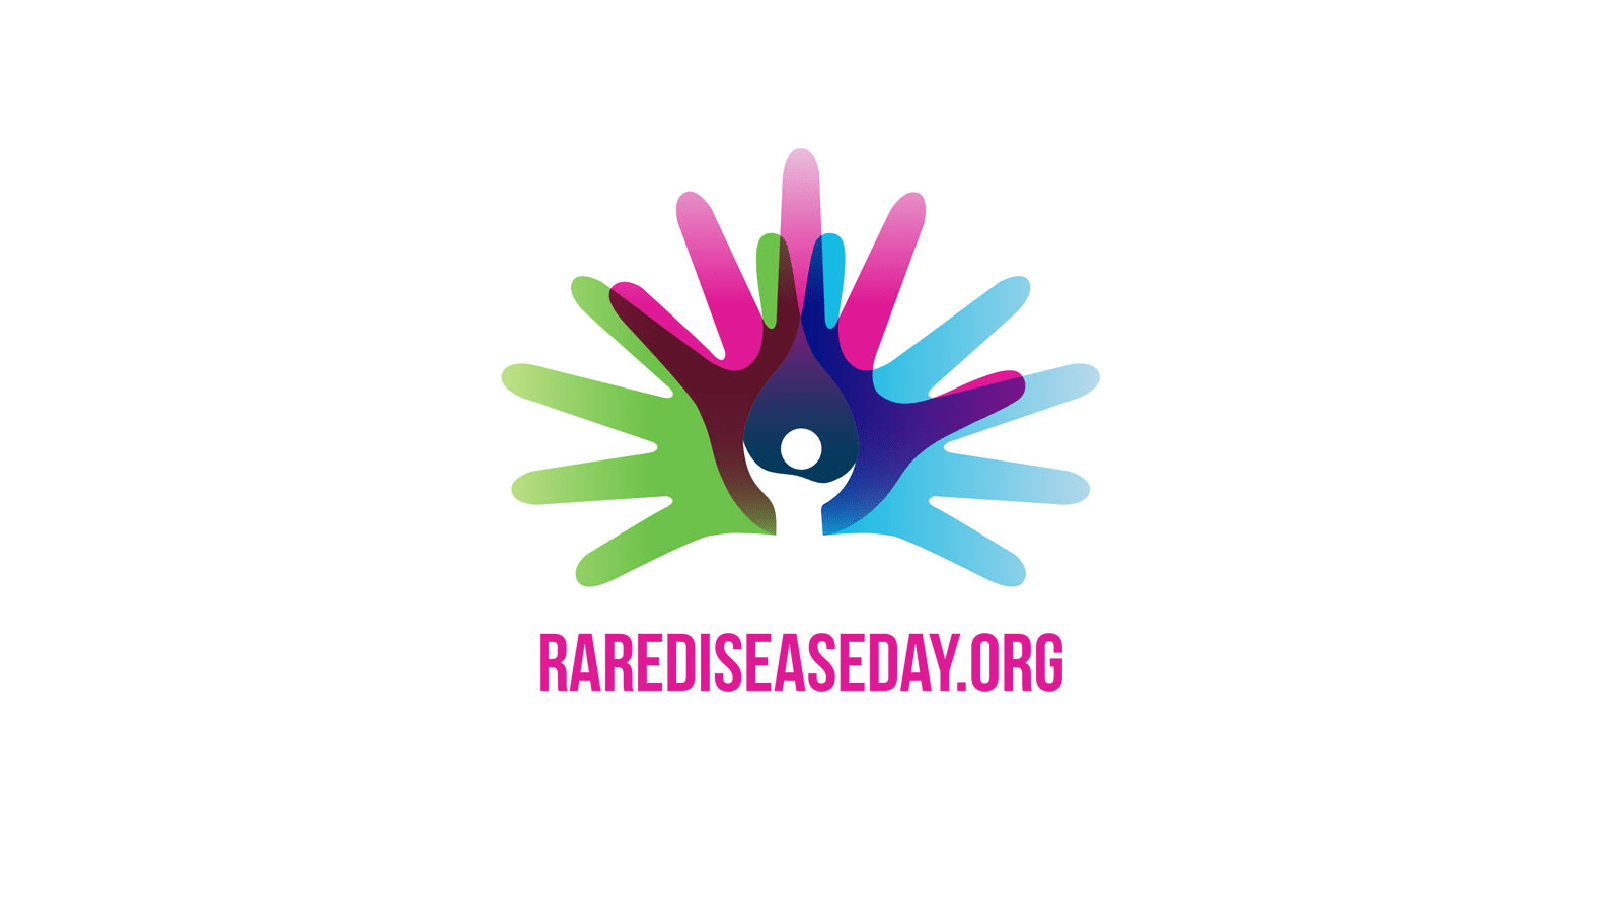 Handprint in green pink and blue - Rare Disease Day logo